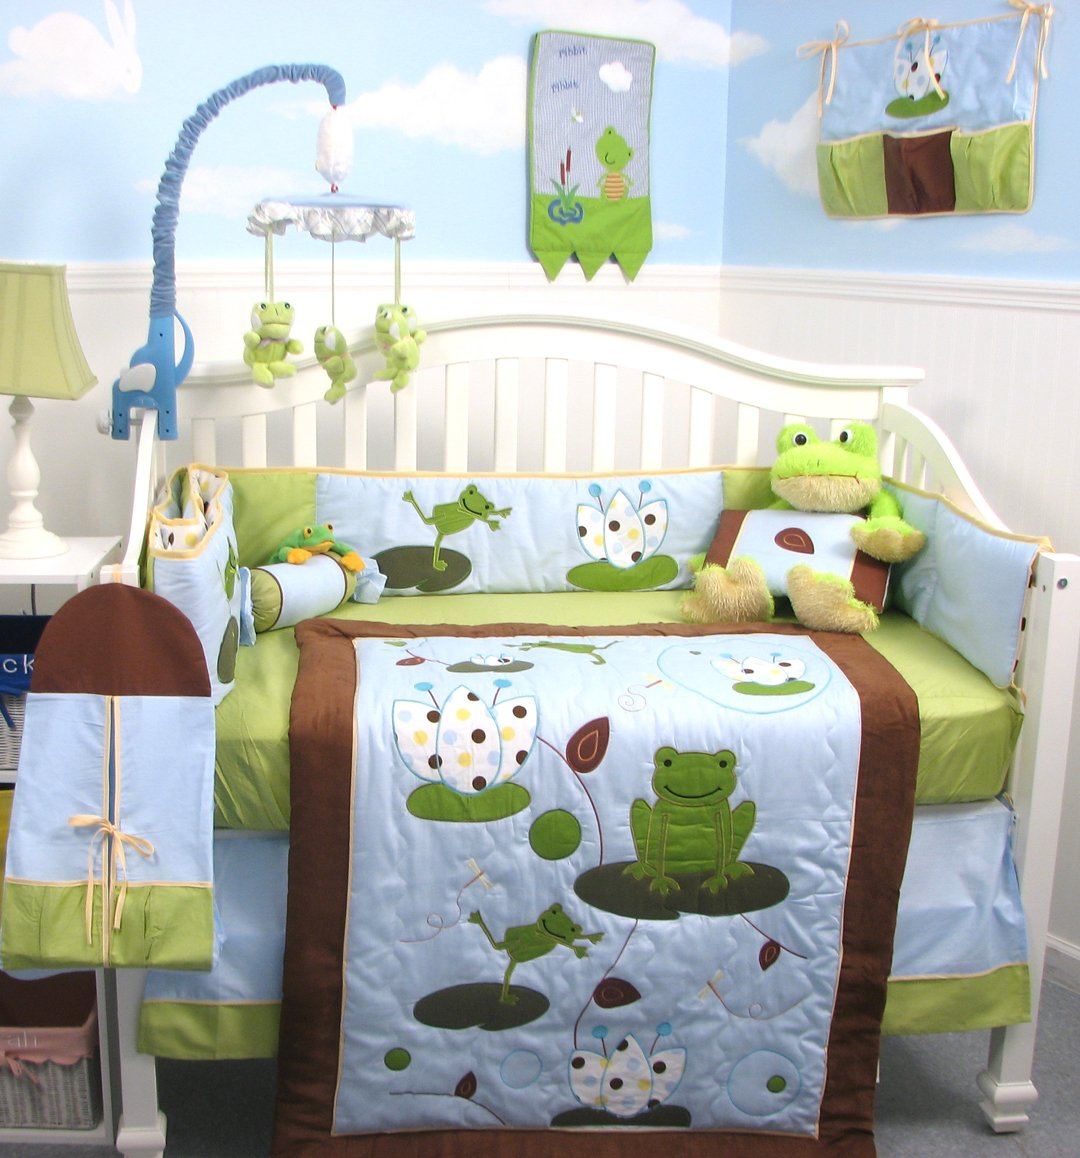 Soho Quack Quack Ducks Baby Bedding And More Baby